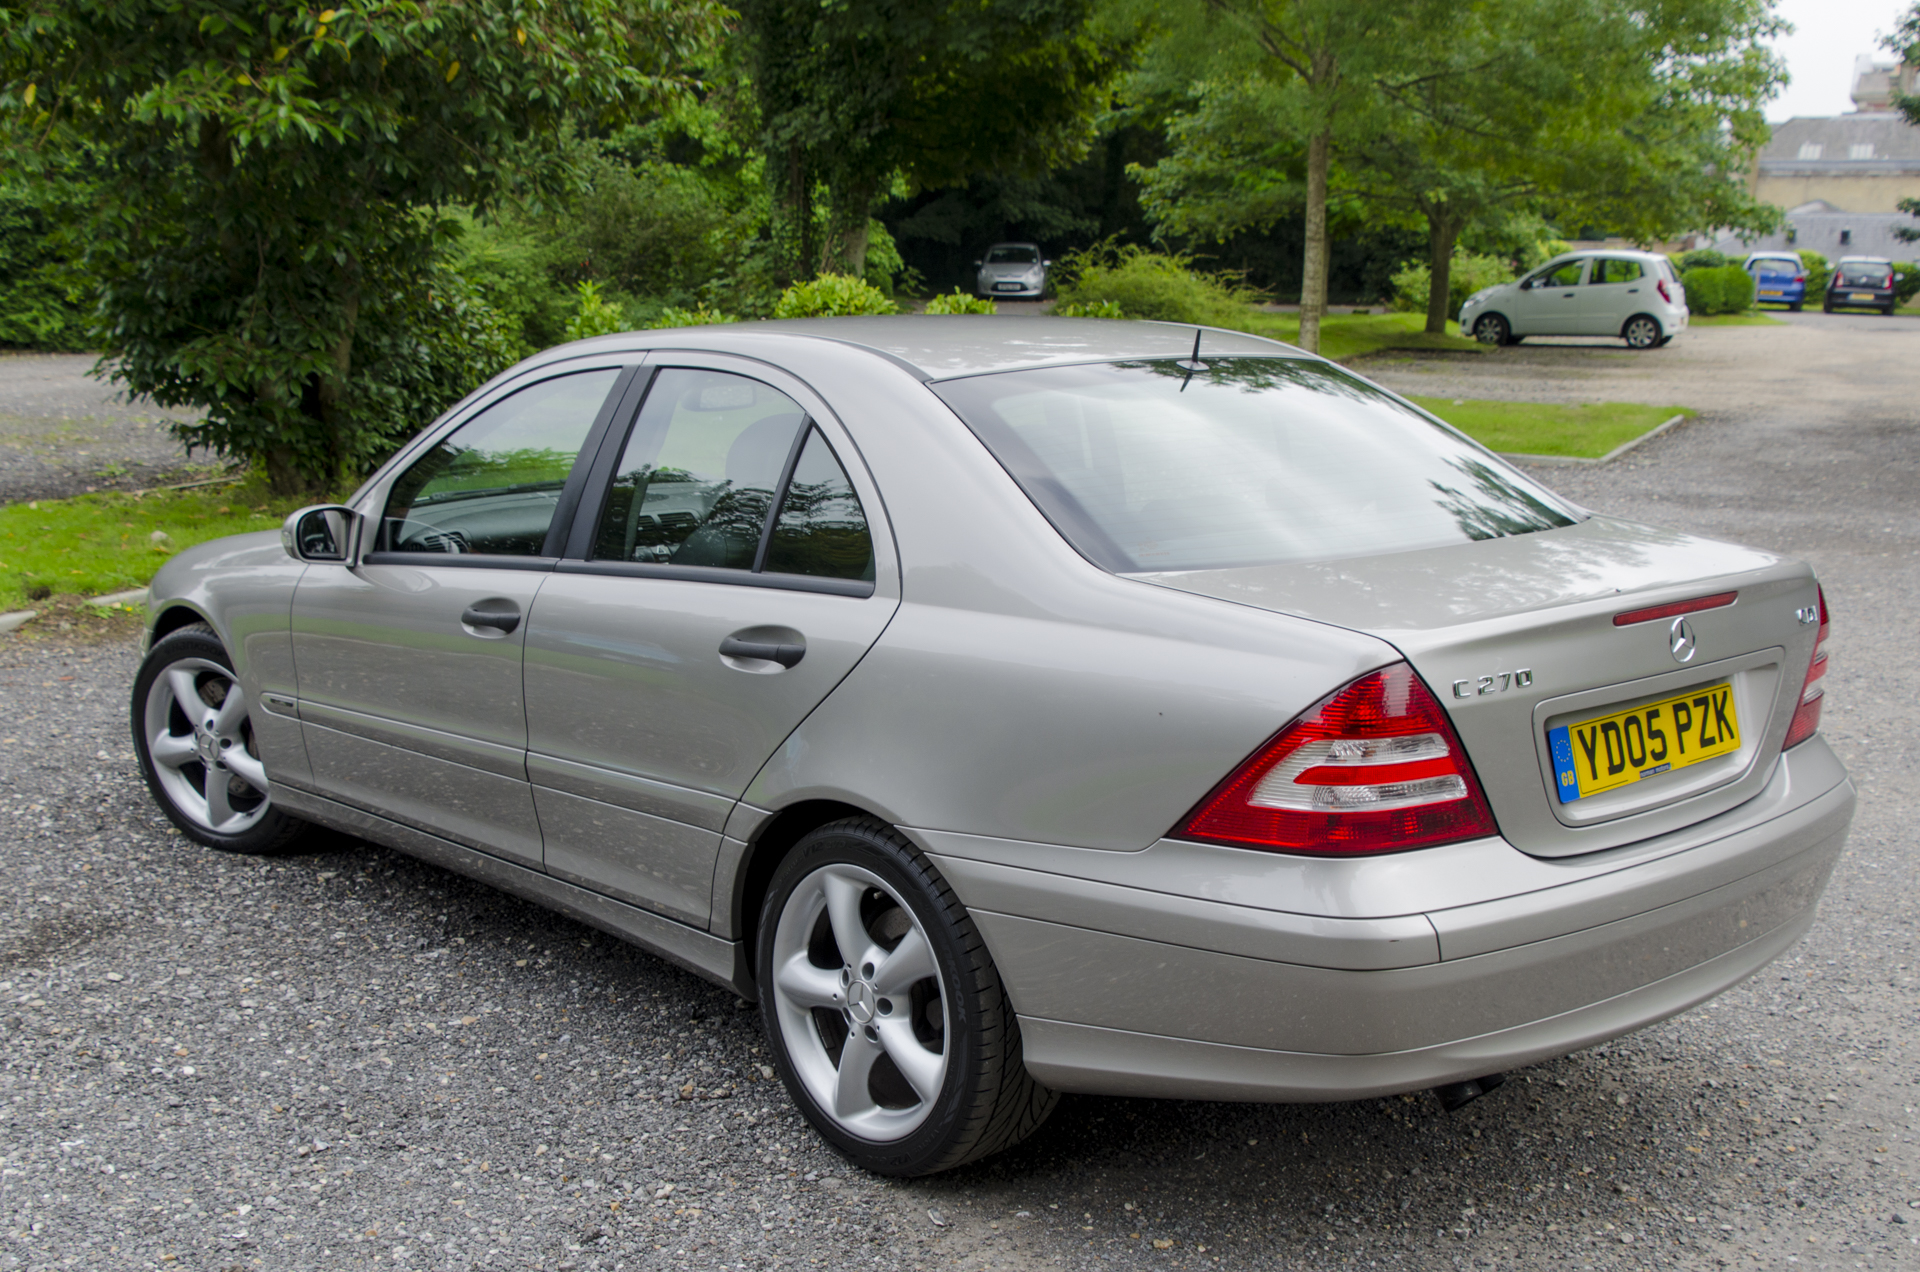 Mercedes benz c270 for sale turnbull oliver for Used mercedes benz cars for sale